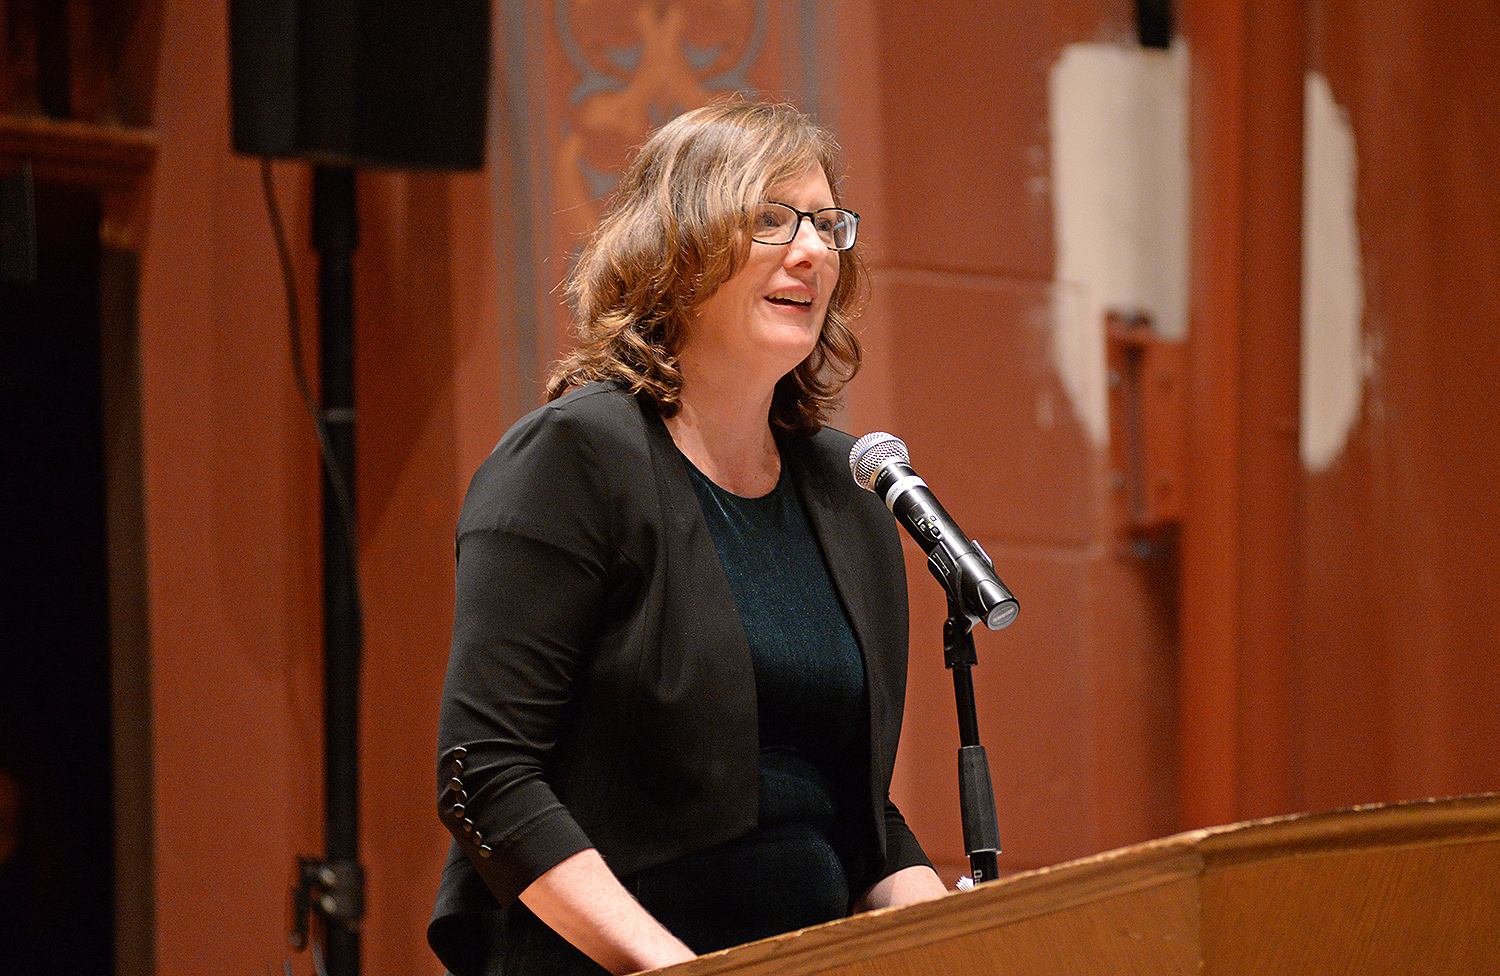 Jennifer Tucker, associate professor of history, associate professor of science in society at Wesleyan introduced Slotkin to the audience. Tucker coordinated the 2017 Shasha Seminar.